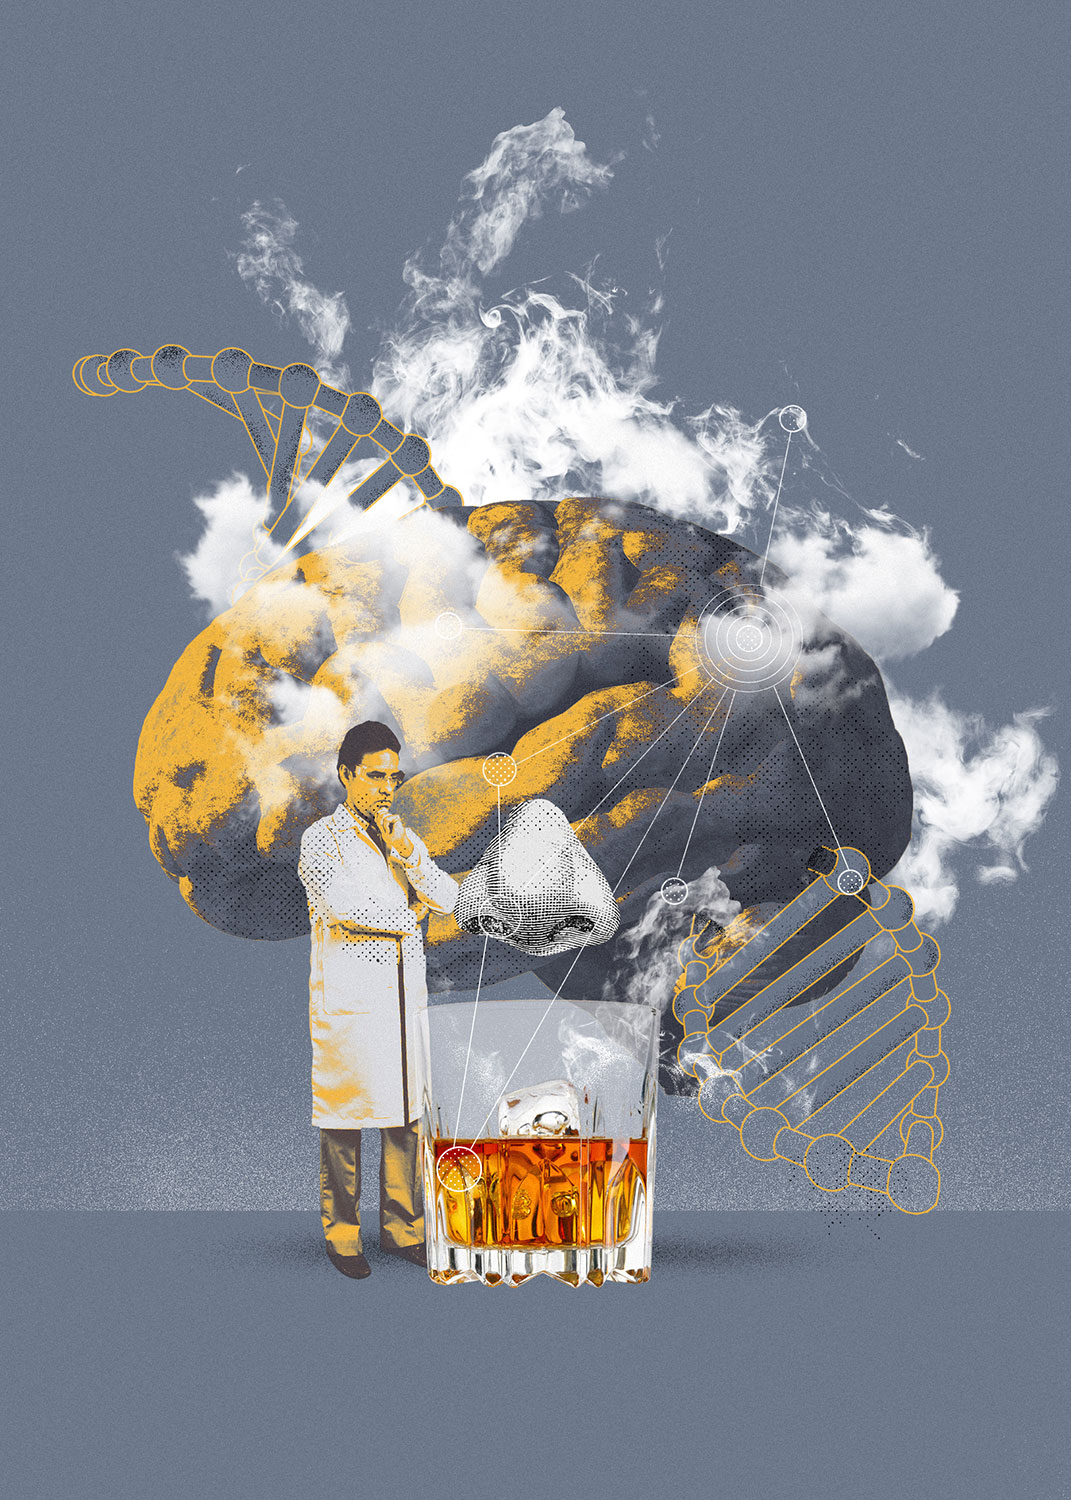 Whisky Advocate: Science of Smoke